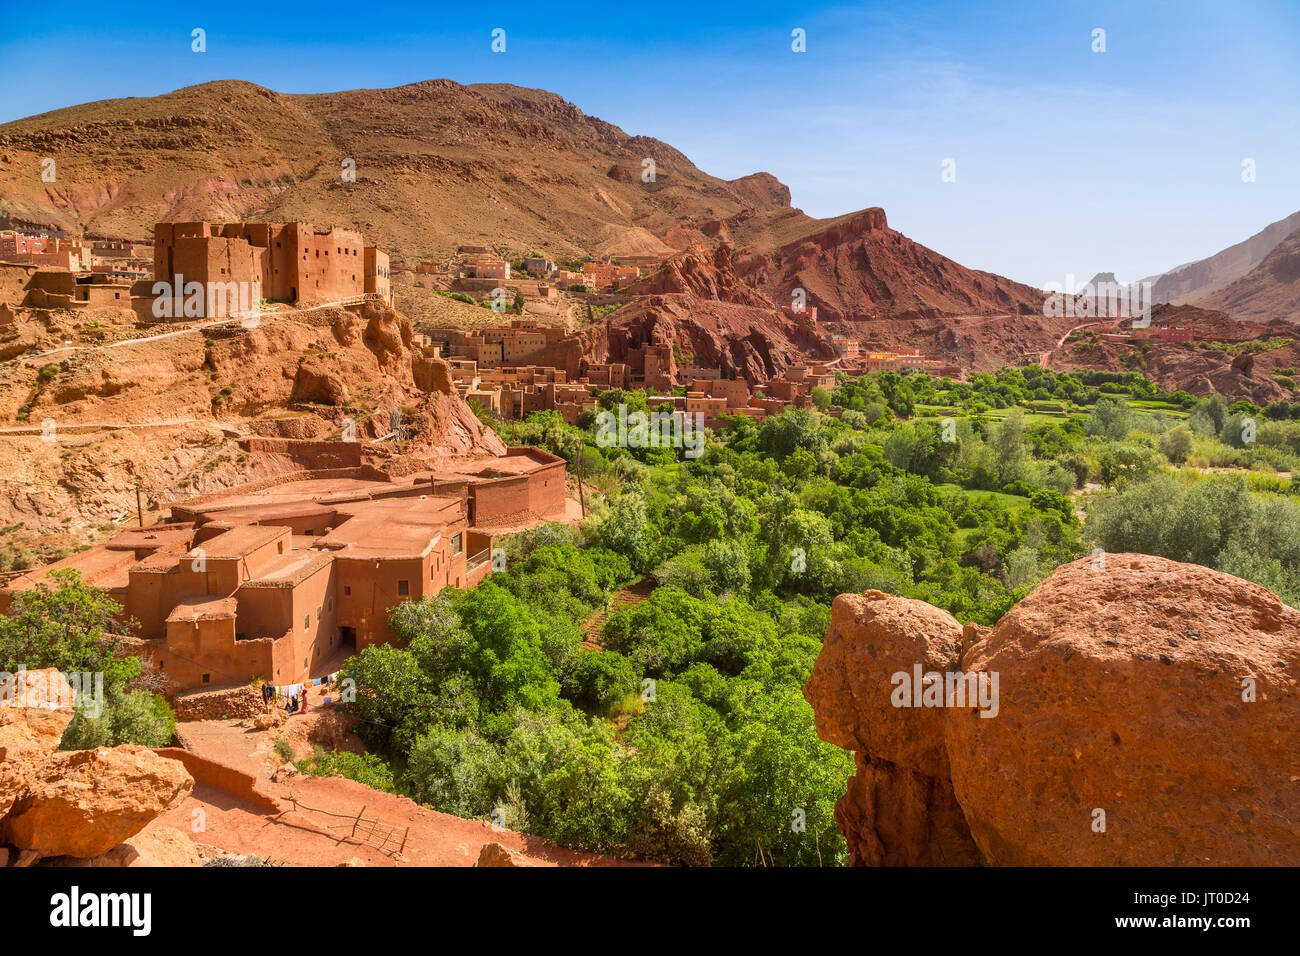 Dades Valley, Dades Gorges, High Atlas. Morocco, Maghreb North Africa - Stock Image